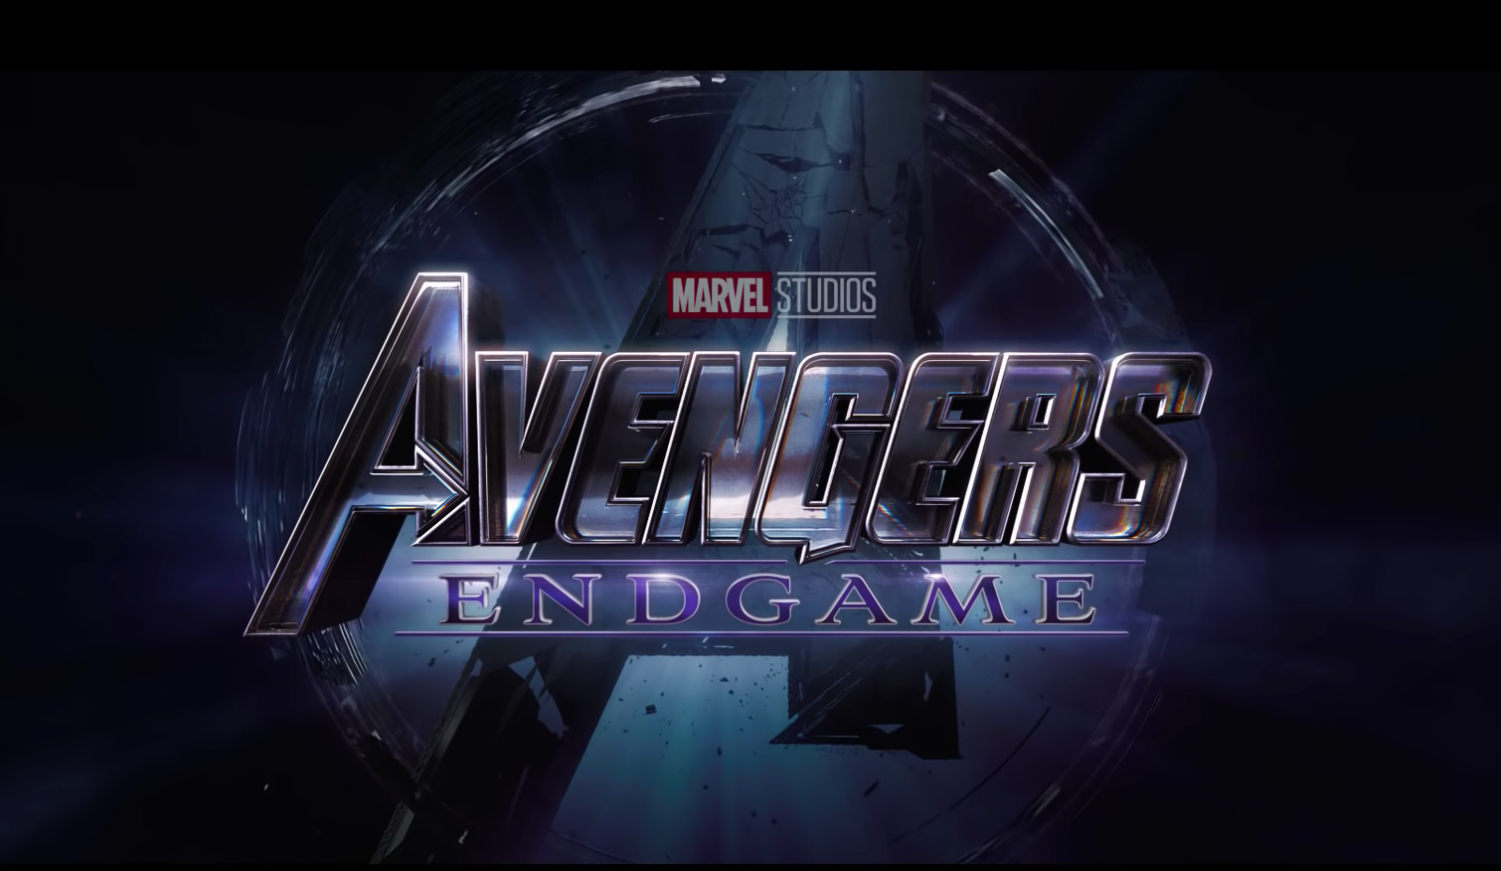 Avengers: Endgame is the anticipated finale of Marvel's Endgame, it premiered on April 22, 2019. Logo presented on movie trailer.